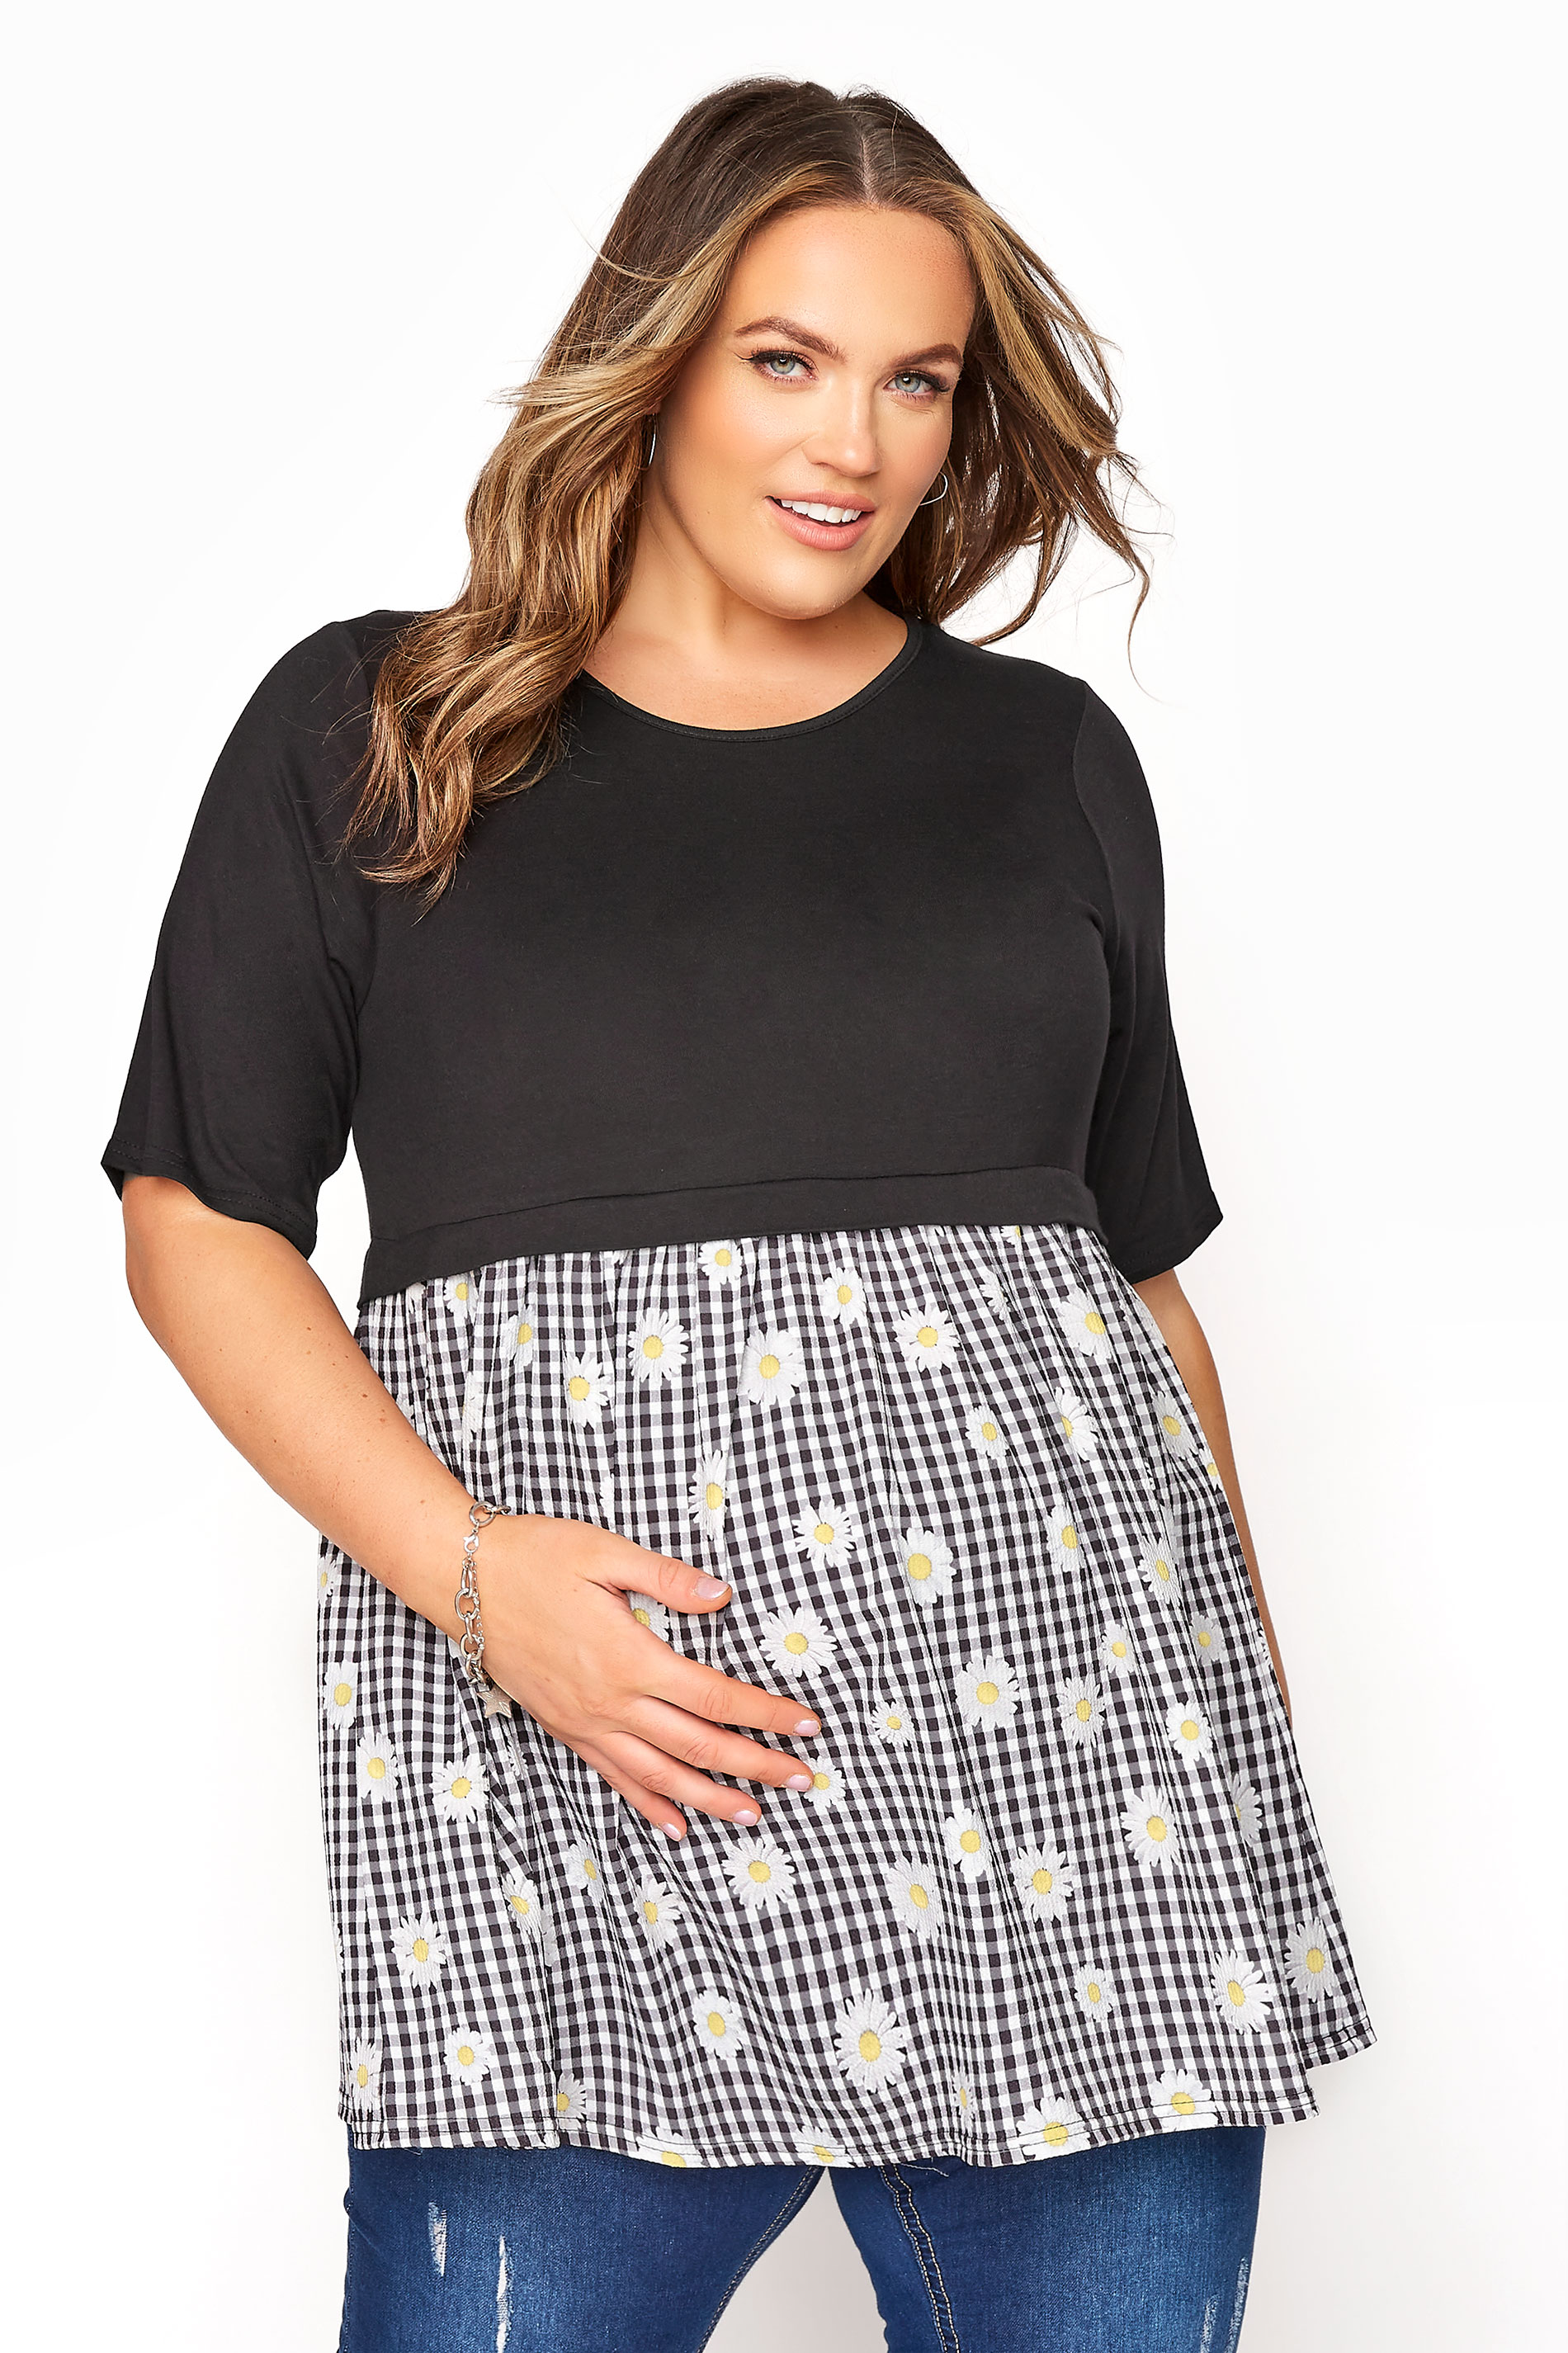 BUMP IT UP MATERNITY Black Gingham Floral Contrast Top_A.jpg